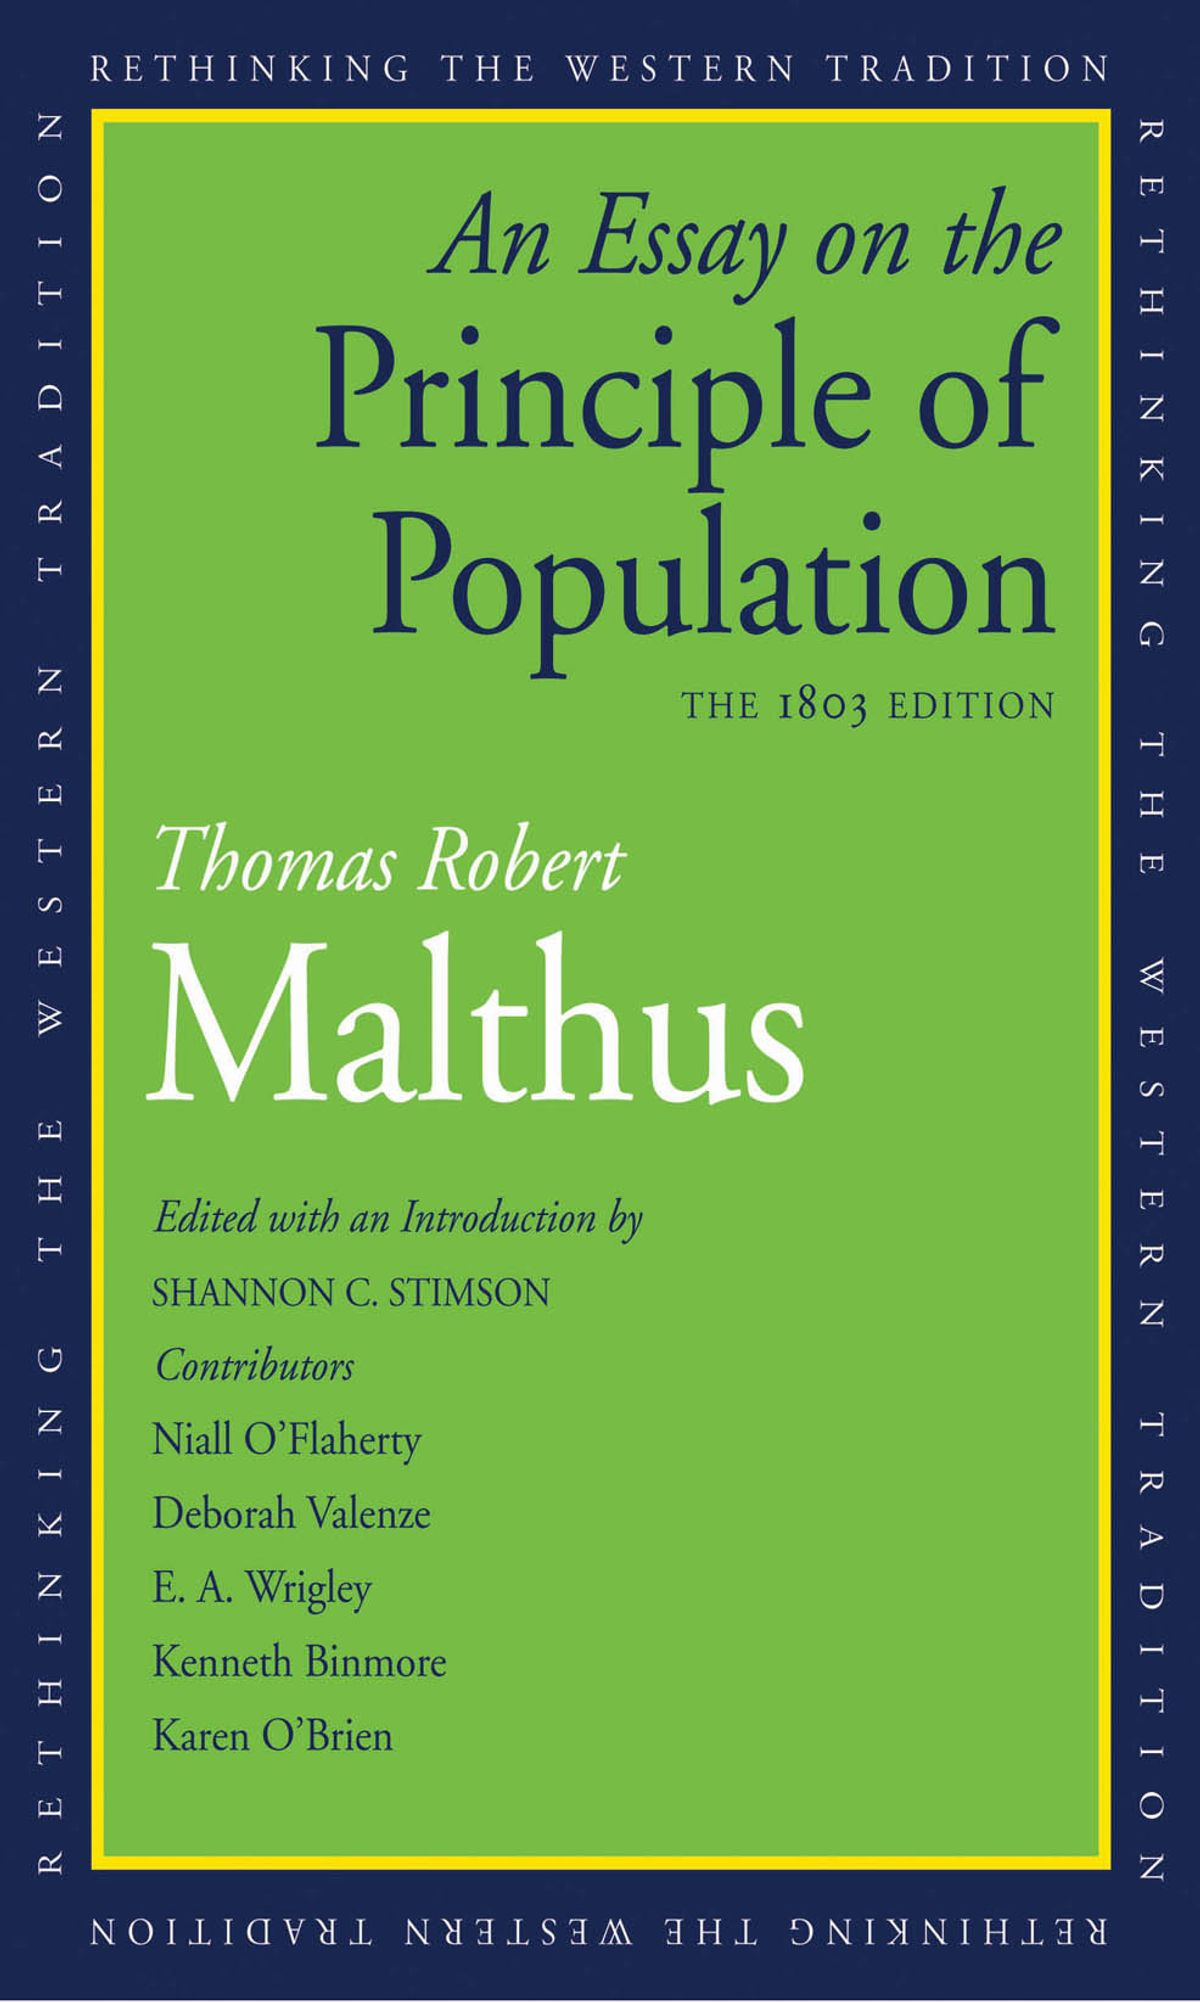 003 Essay On The Principle Of Population Example An Singular Thomas Malthus Sparknotes Advocated Ap Euro Full